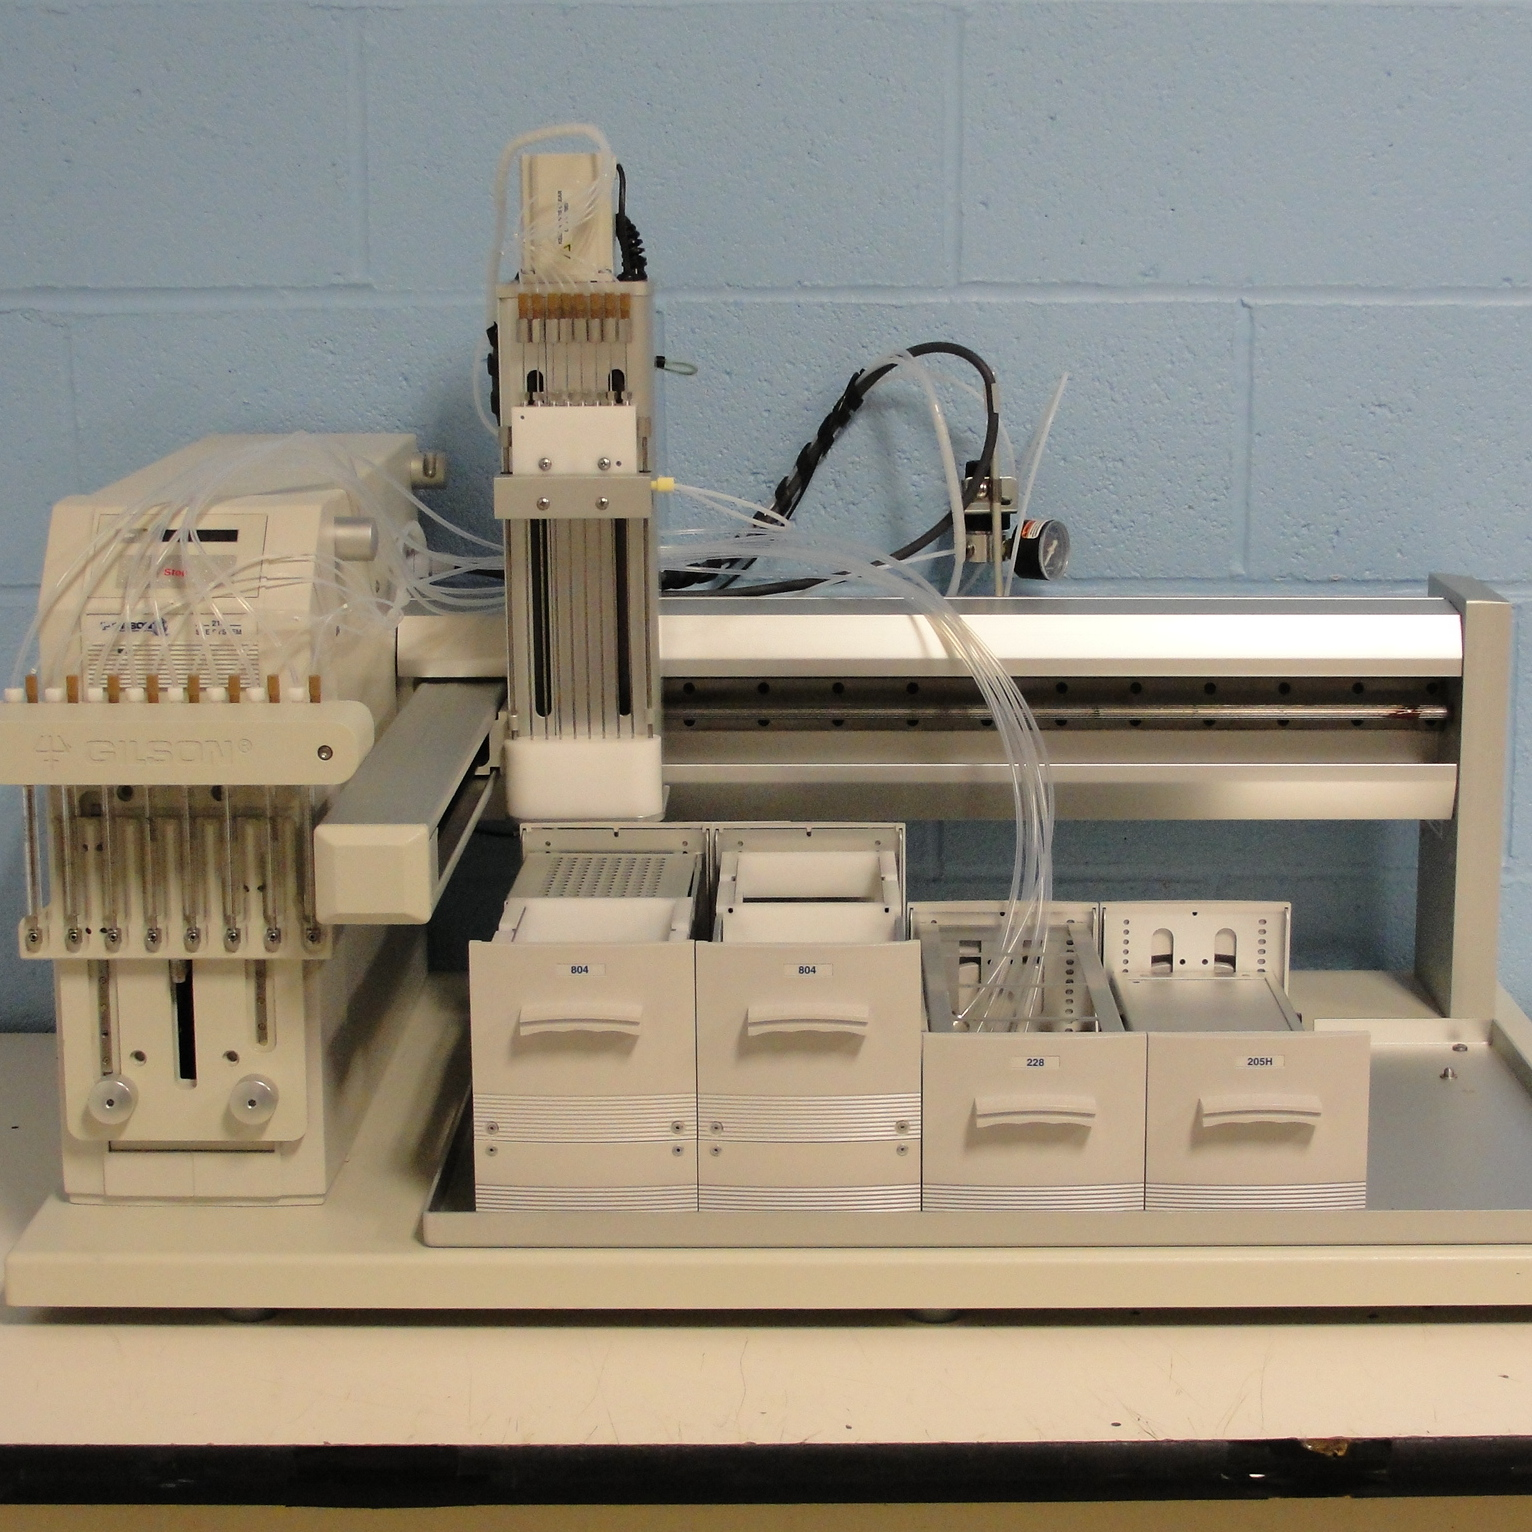 Gilson SPE 215 Solid Phase Extraction System Image